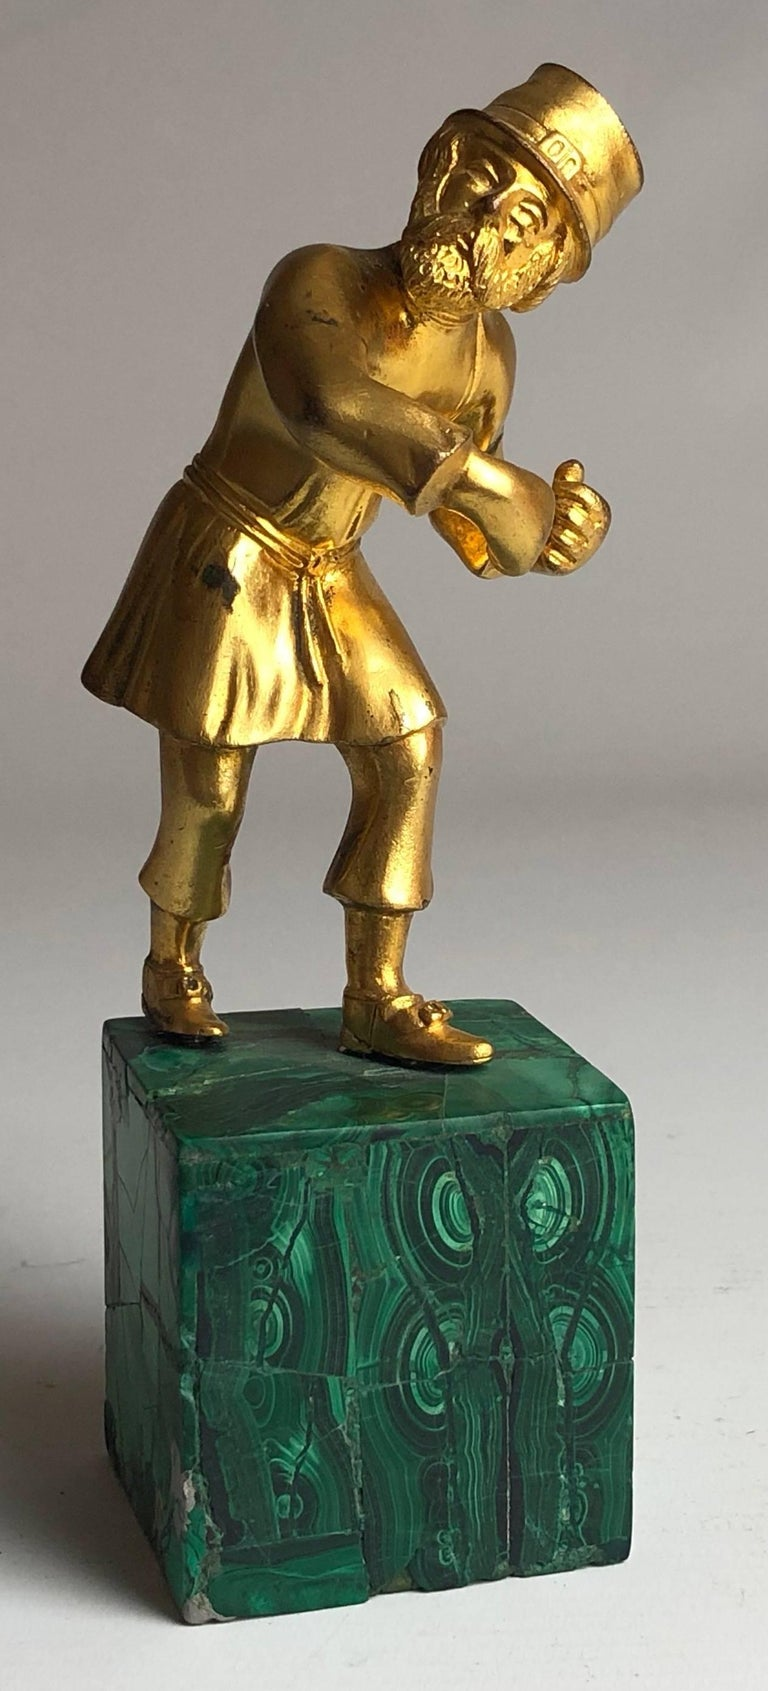 An early 20th century Russian gilded bronze, finely modelled as a traditional Cossack, on a Malachite base,  Russian, circa 1900.  Measure: He stands 6